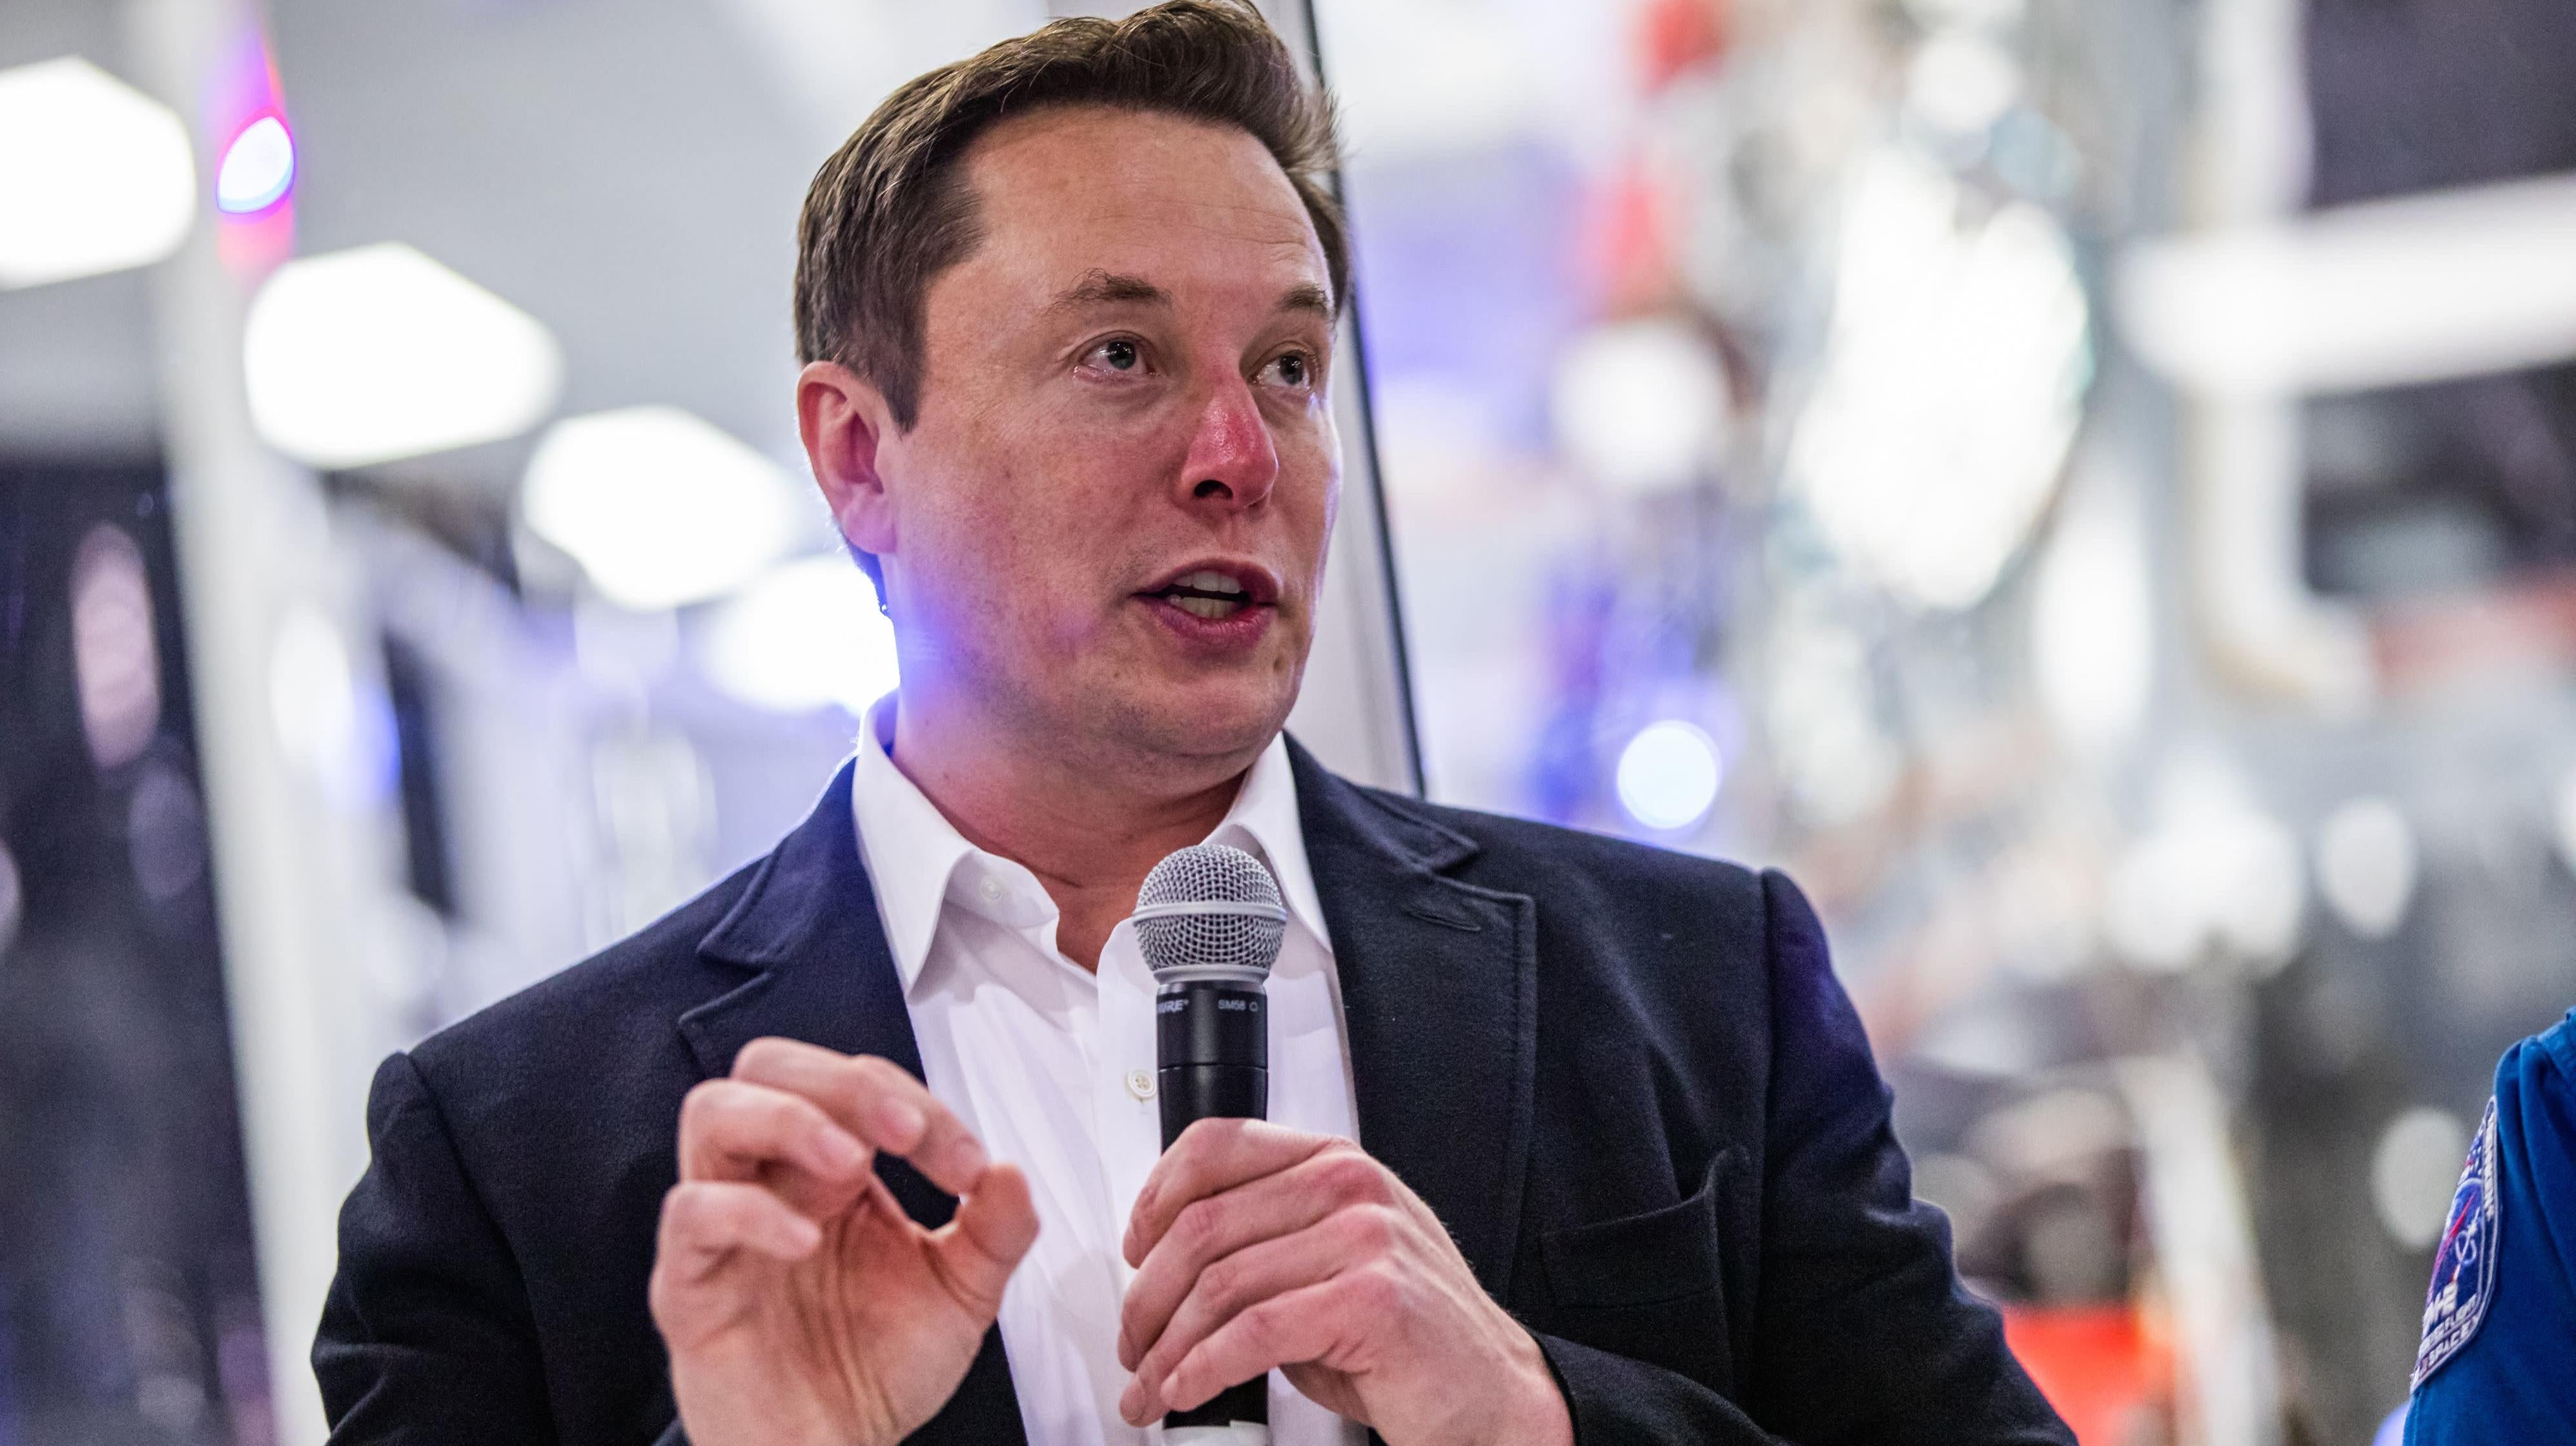 Elon Musk: A New Life Awaits You On The Off-World Colonies, For A Price